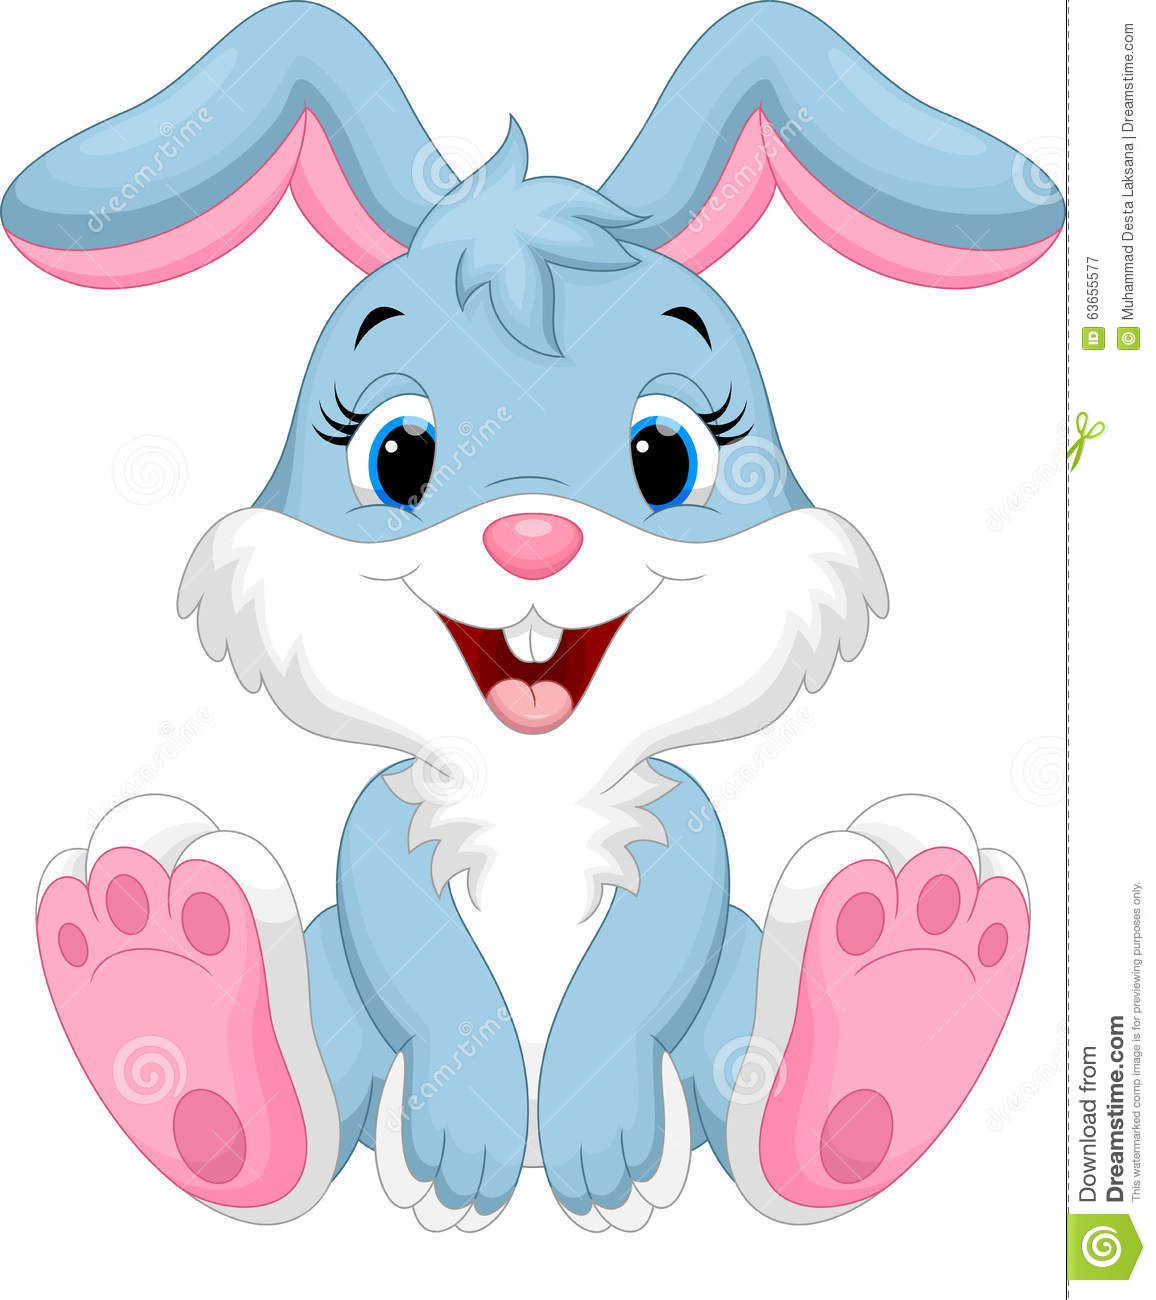 Dessin anim mignon de lapin illustration stock illustration du retrait amusement 63655577 - Dessin lapin mignon ...